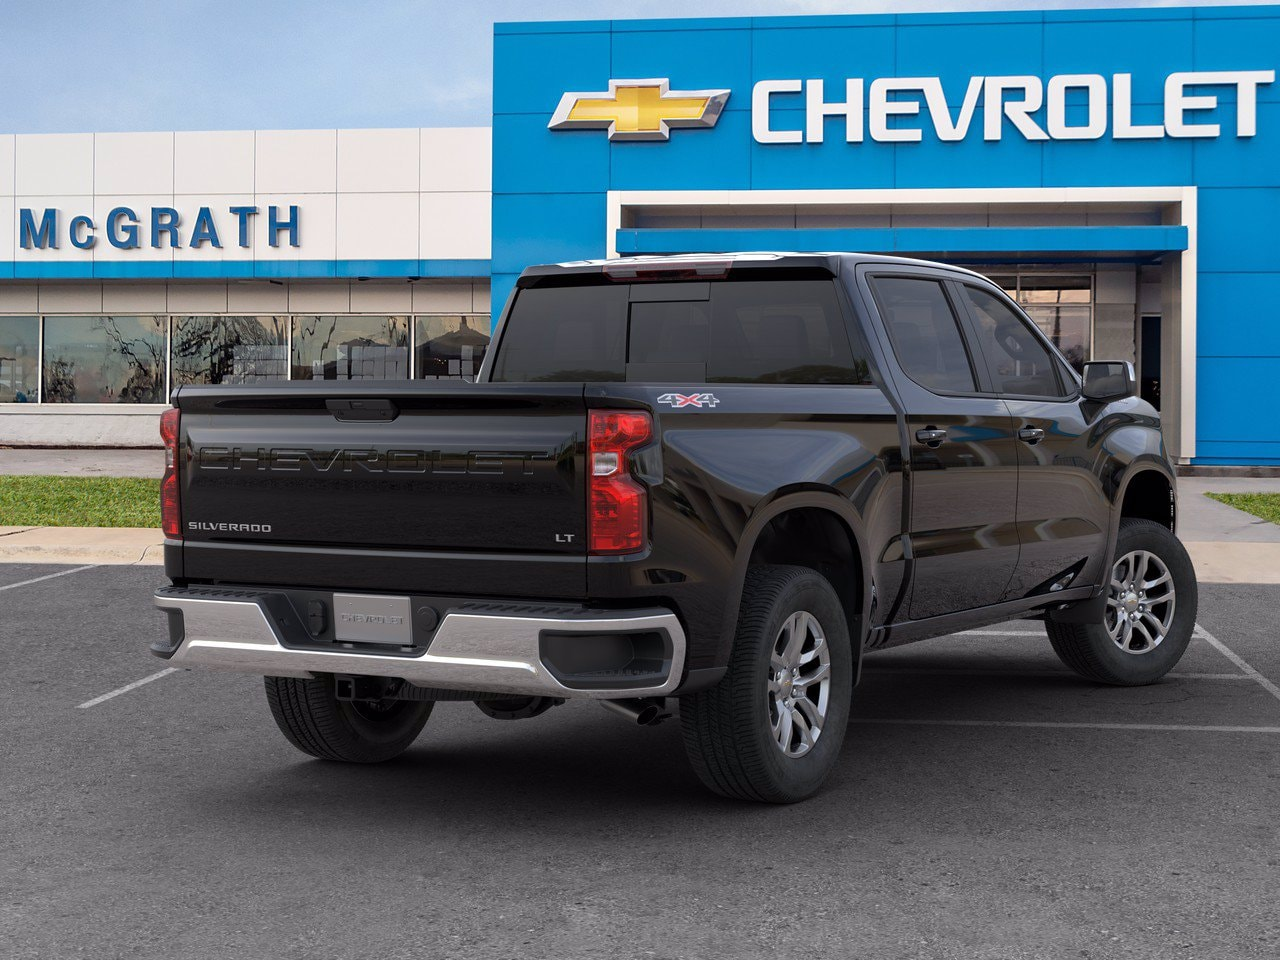 2020 Chevrolet Silverado 1500 Crew Cab 4x4, Pickup #C201522 - photo 2